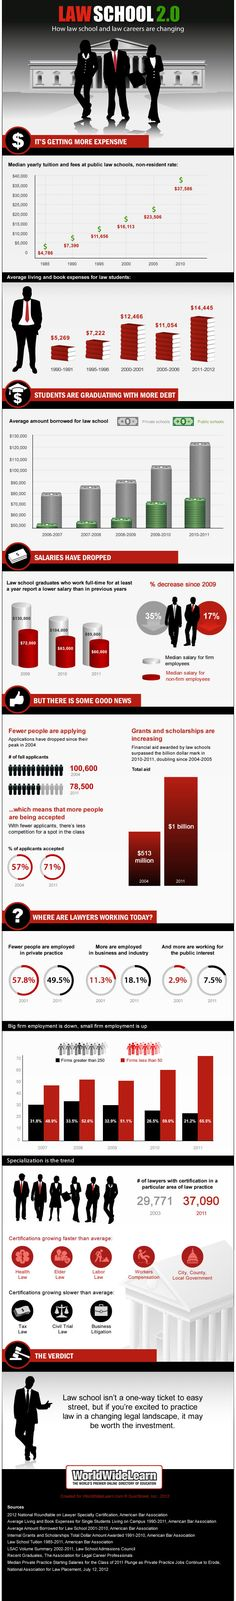 Law school 2.0: How law school and law careers are changing [infographic] - Holy Kaw!